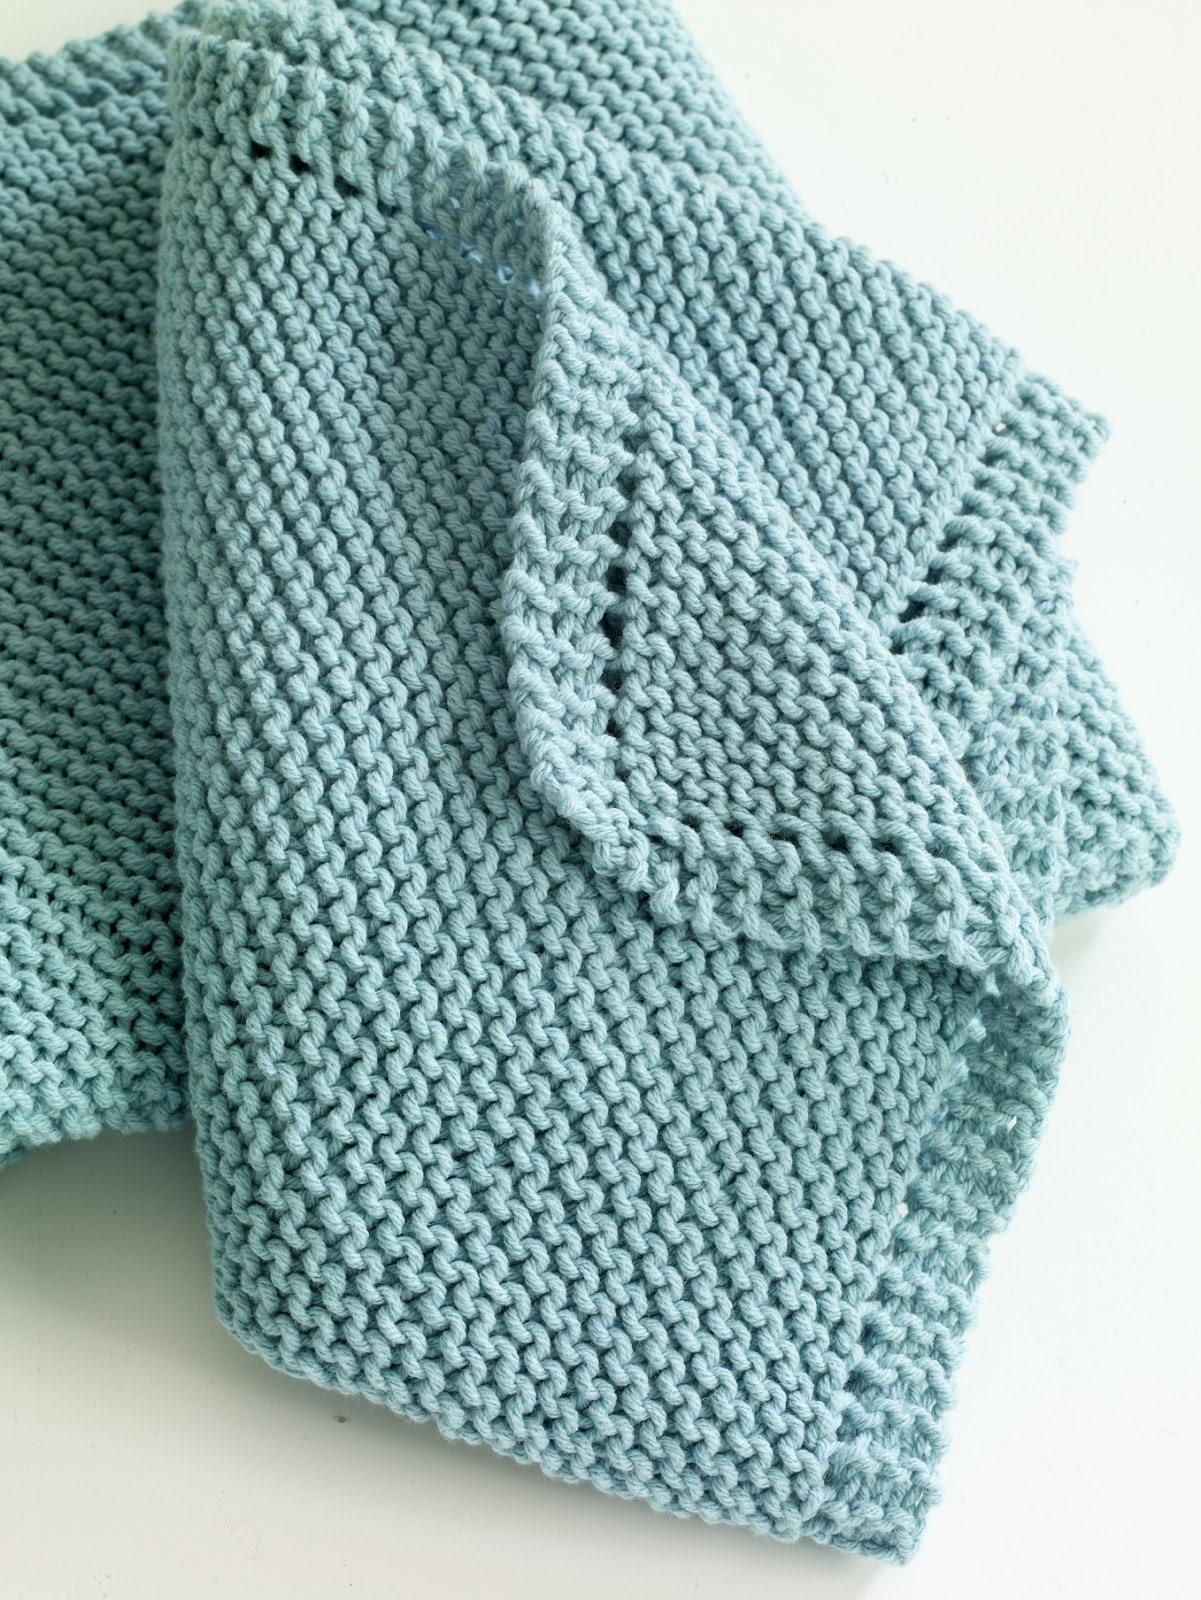 Easy Knitting Blanket Patterns : Serenity Knits: December 2012